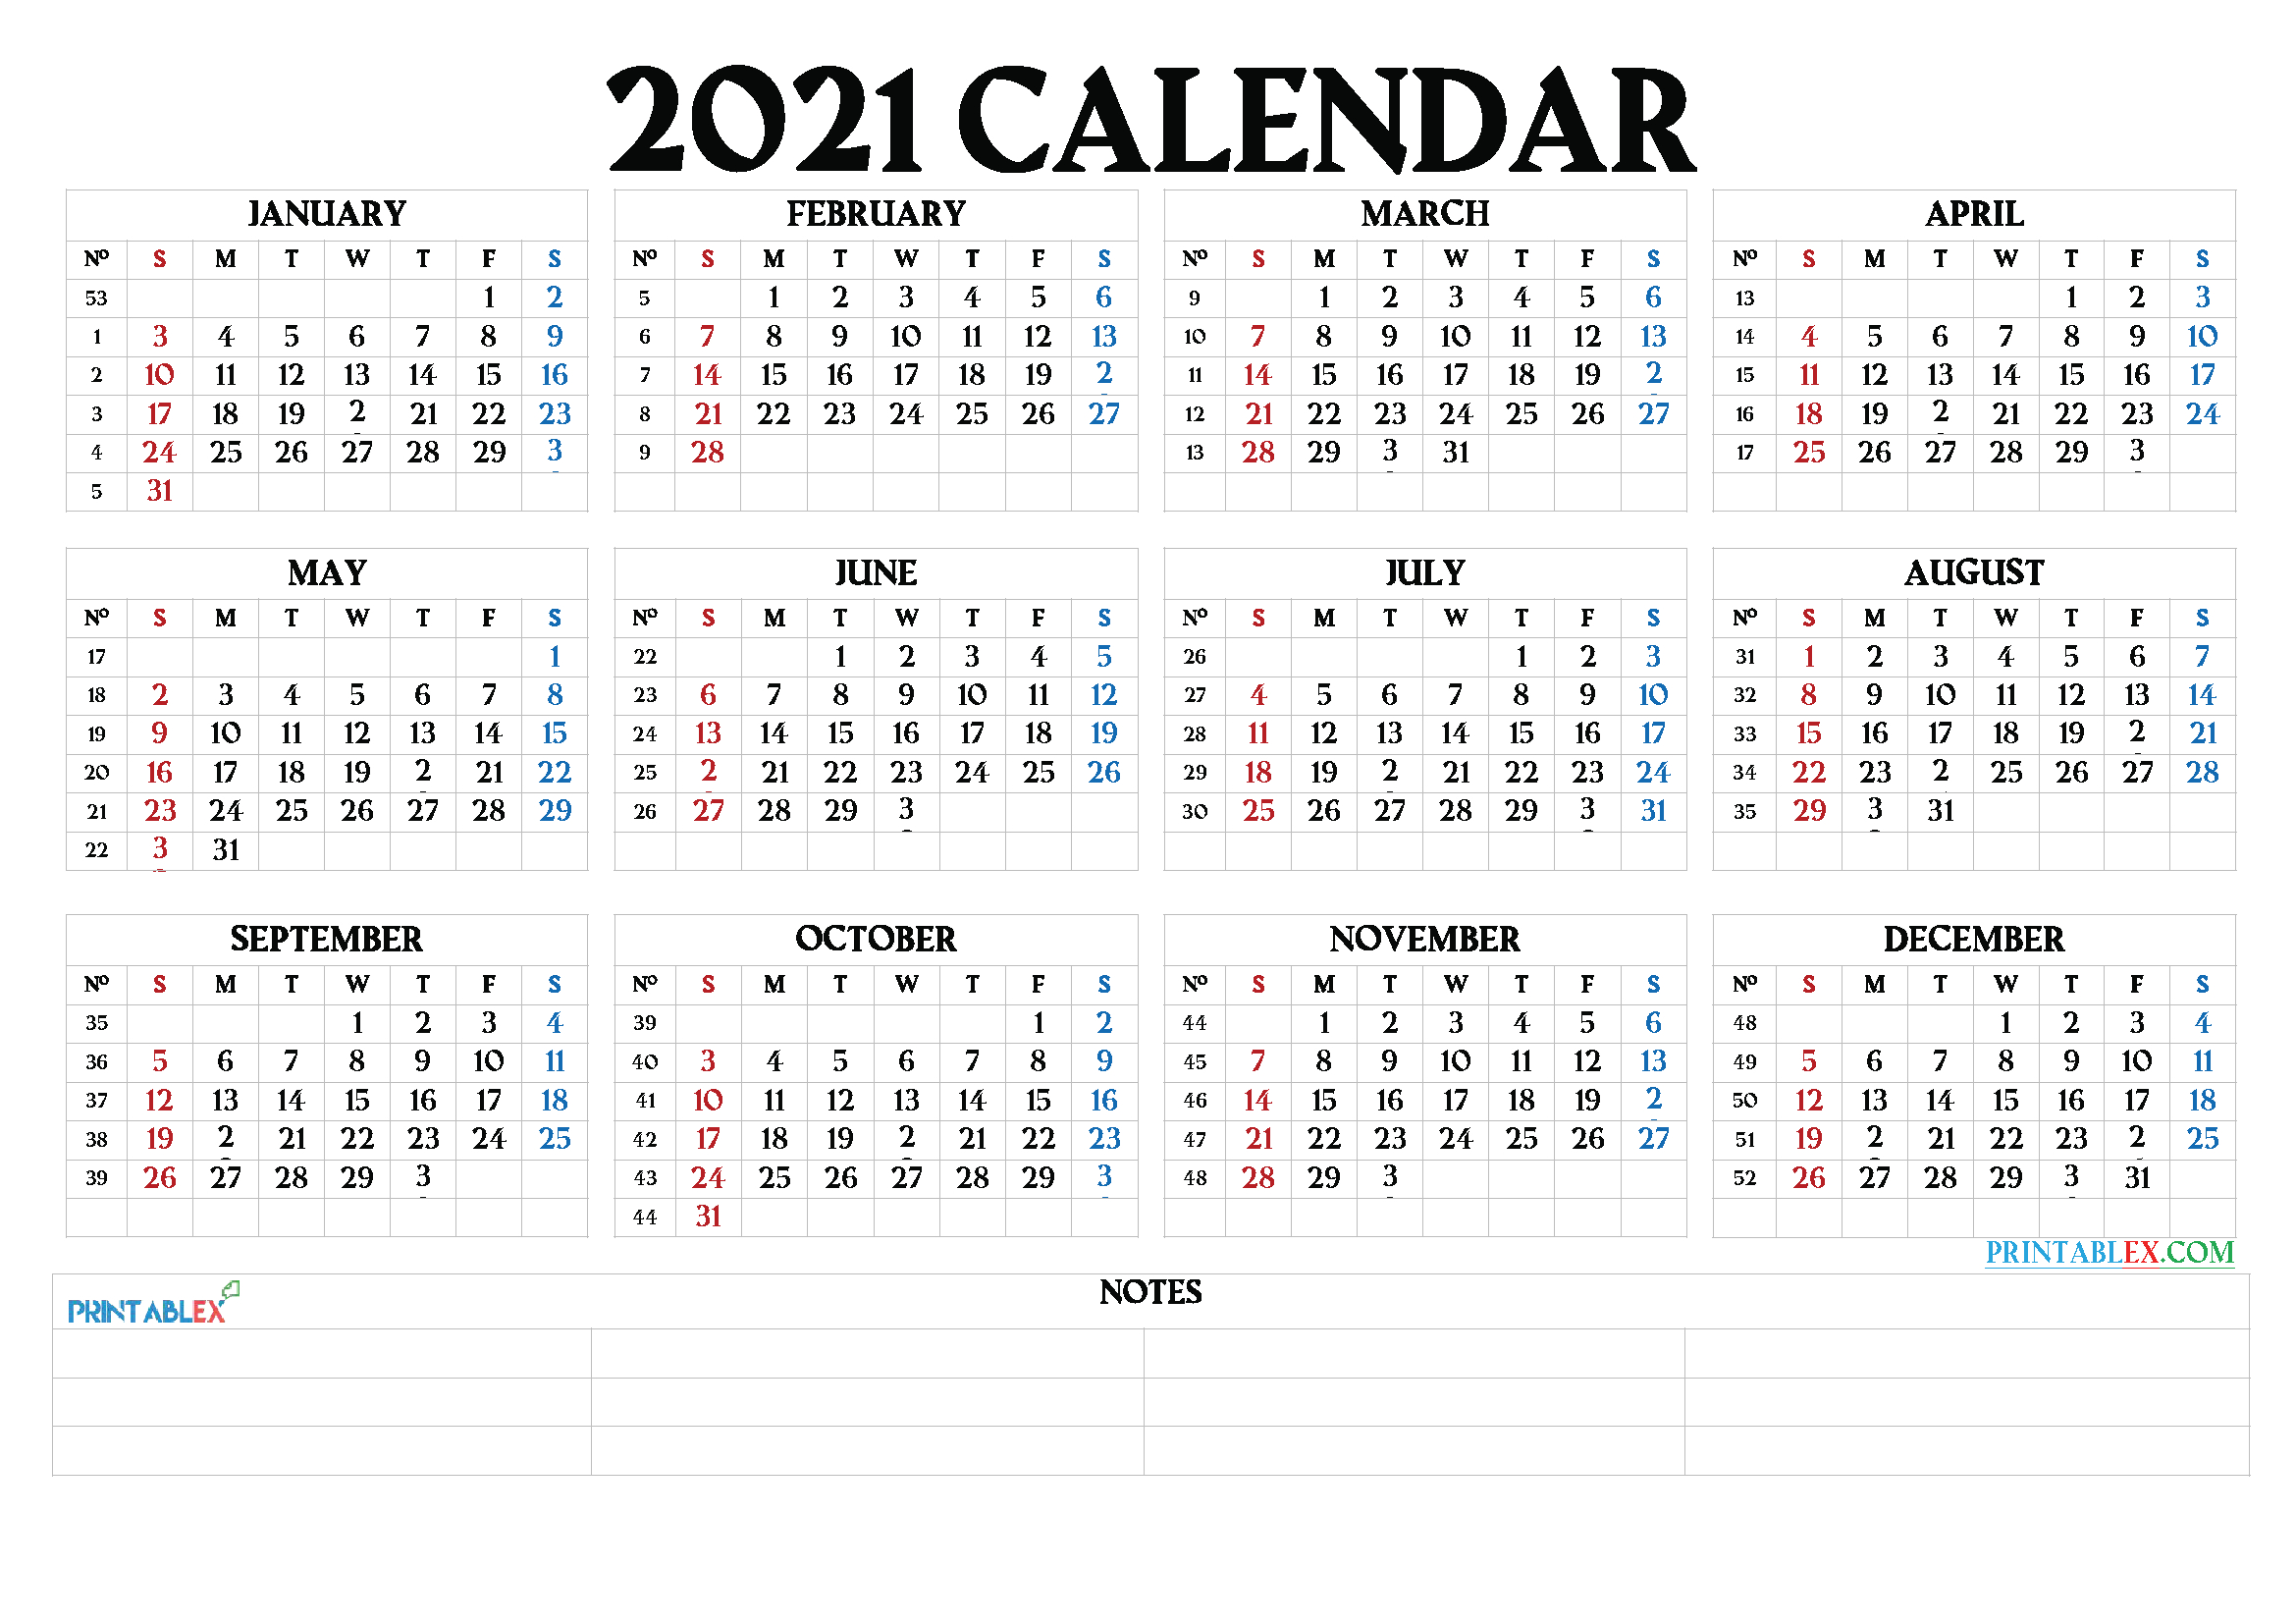 Free 2021 Yearly Calender Template - 2021 Printable Yearly